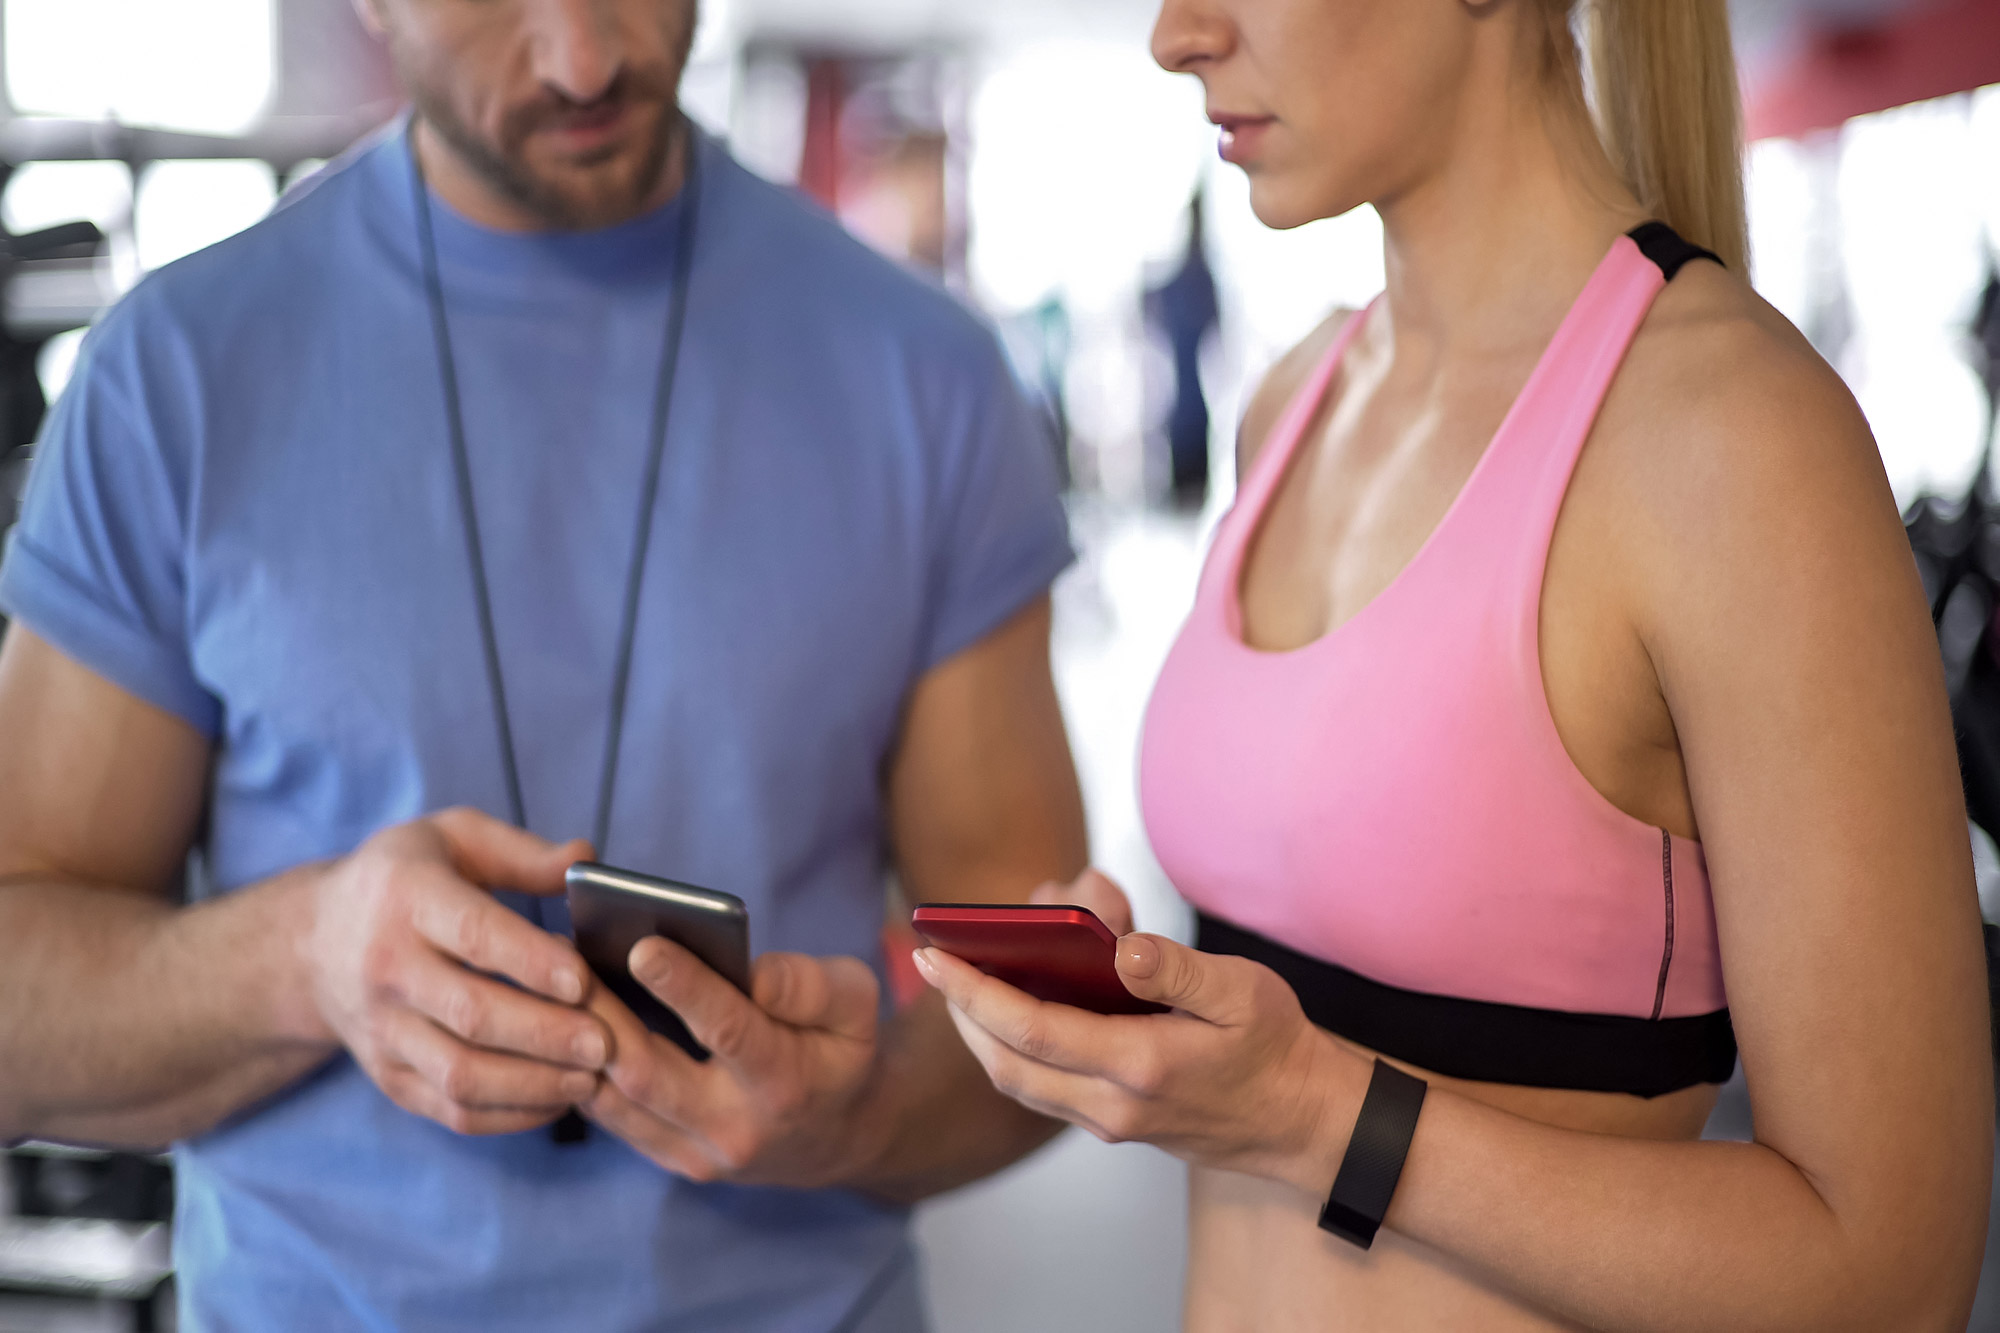 Fusing Fitness launches new gym challenge app